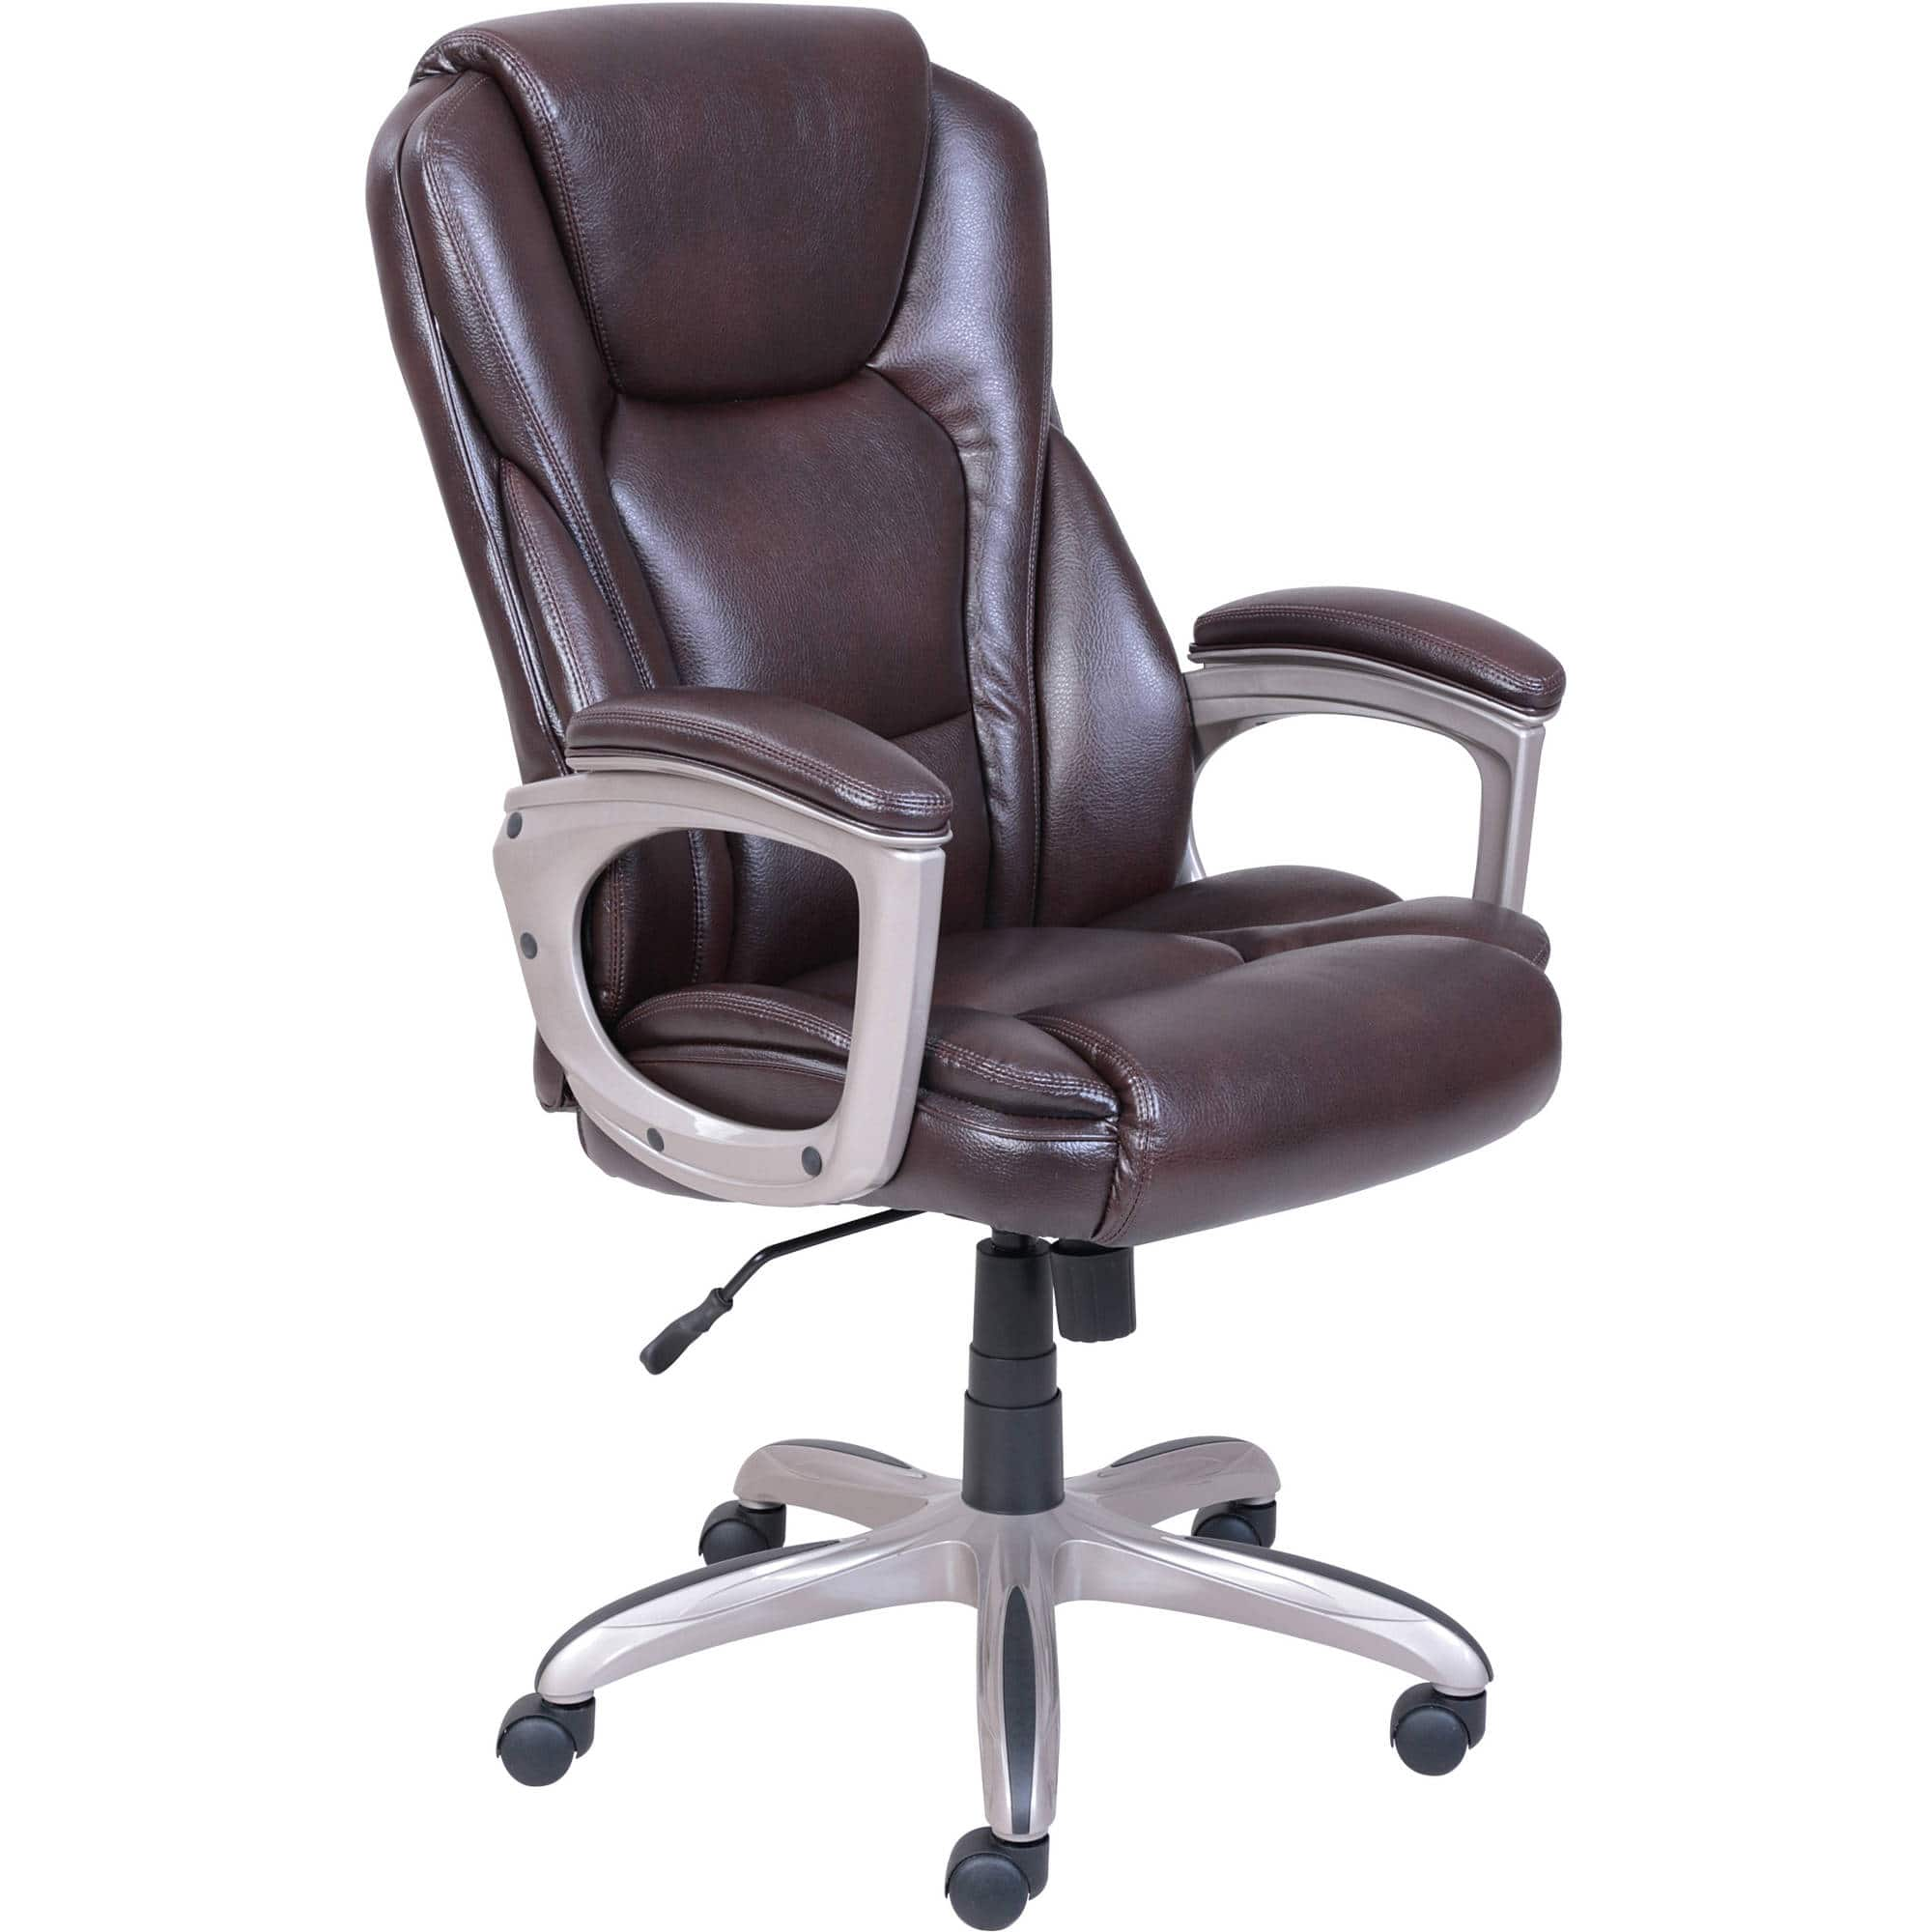 ip wellness light office chair grey walmart serta leather executive health air com